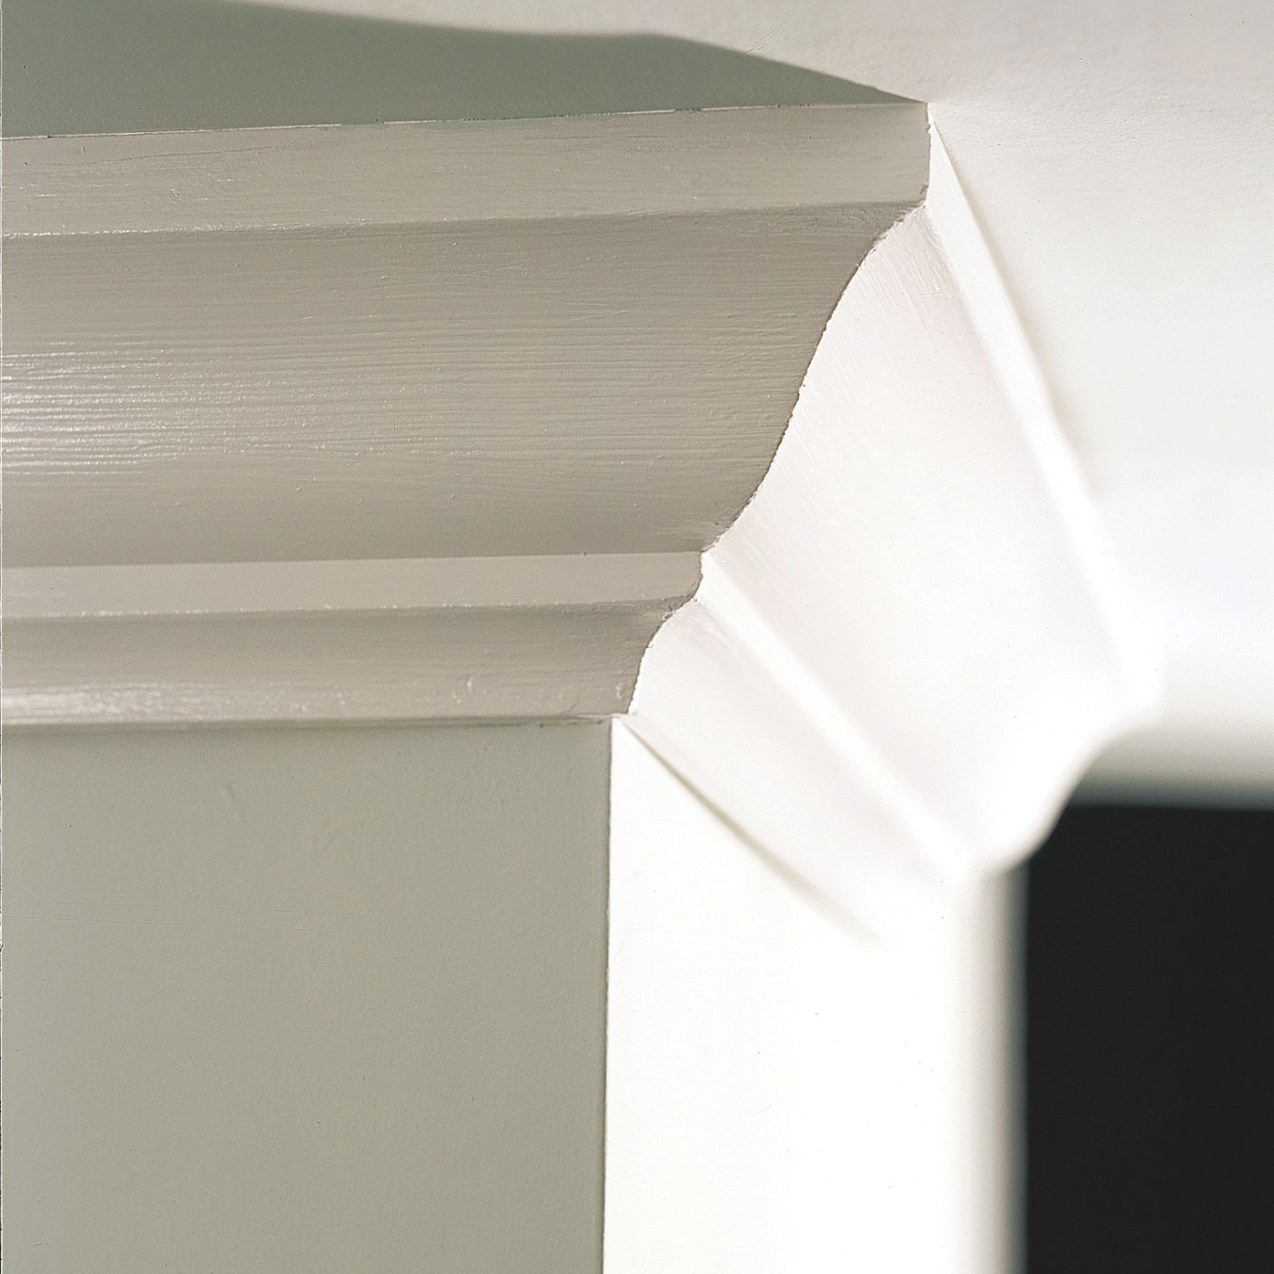 How To Install Crown Molding - This Old House pertaining to What Is Crown Molding